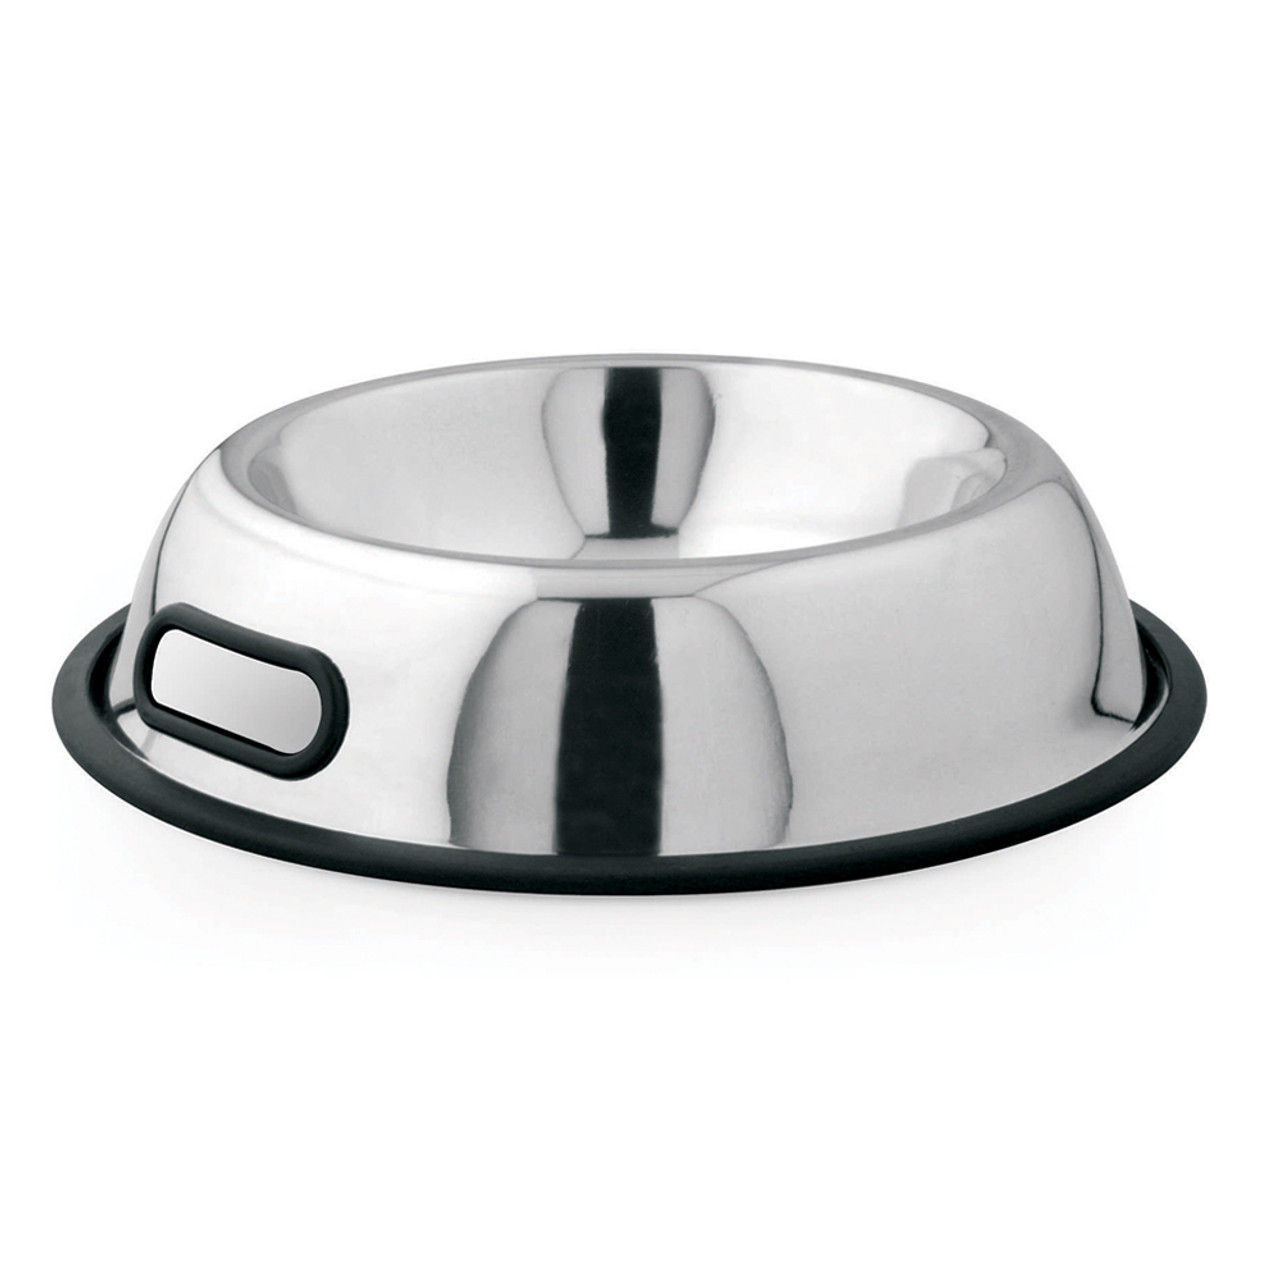 Dineasty Stainless Steel Non-Tip Dog Bowl w/Handle